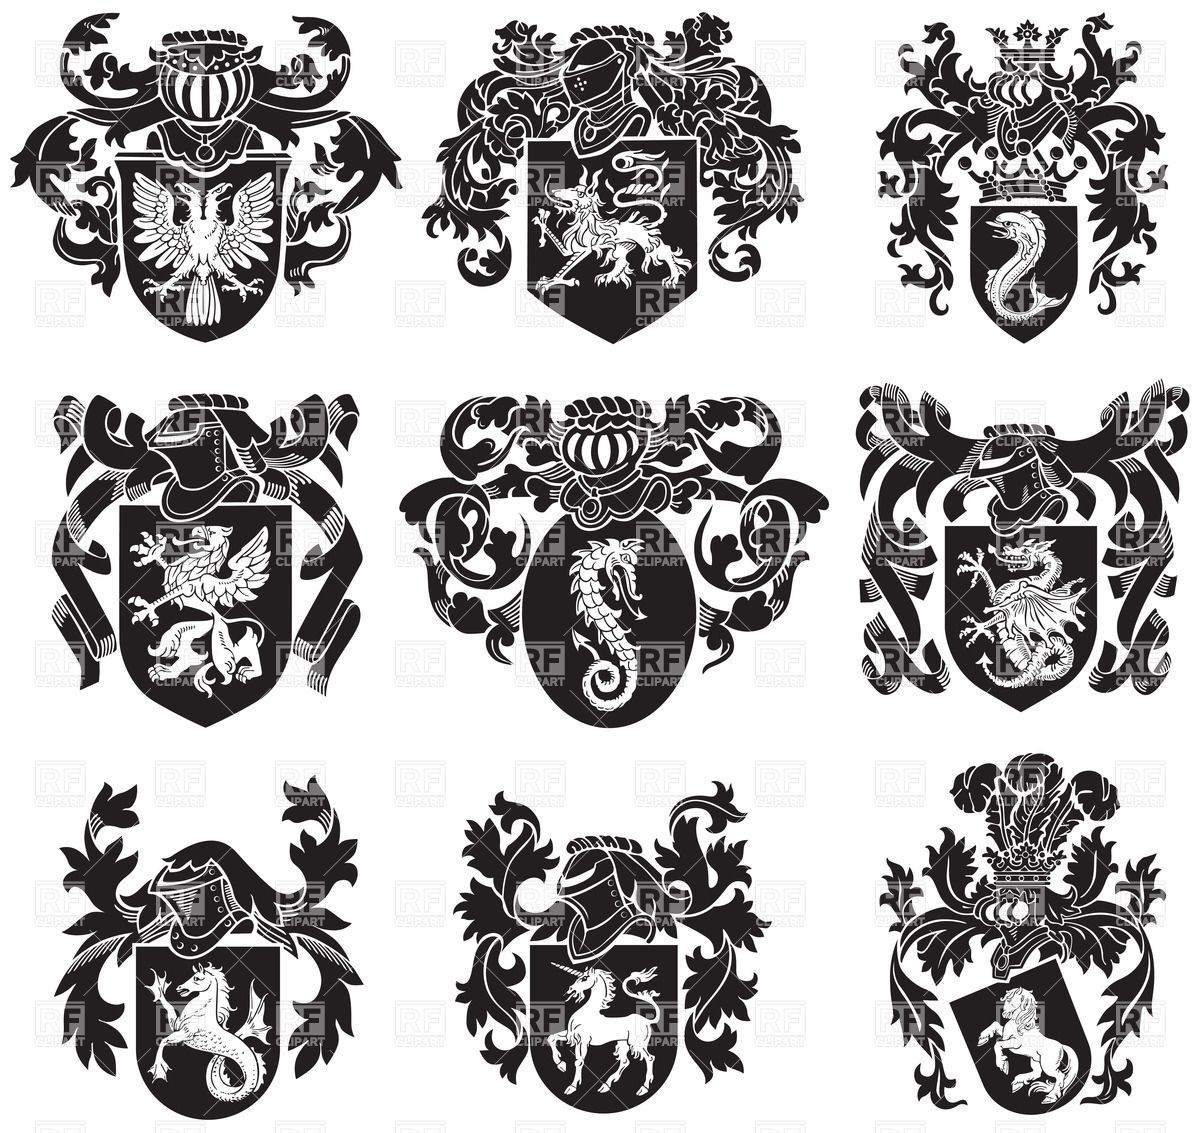 coat-of-arms-medieval-heraldic-emblems-Download-Royalty-free ...